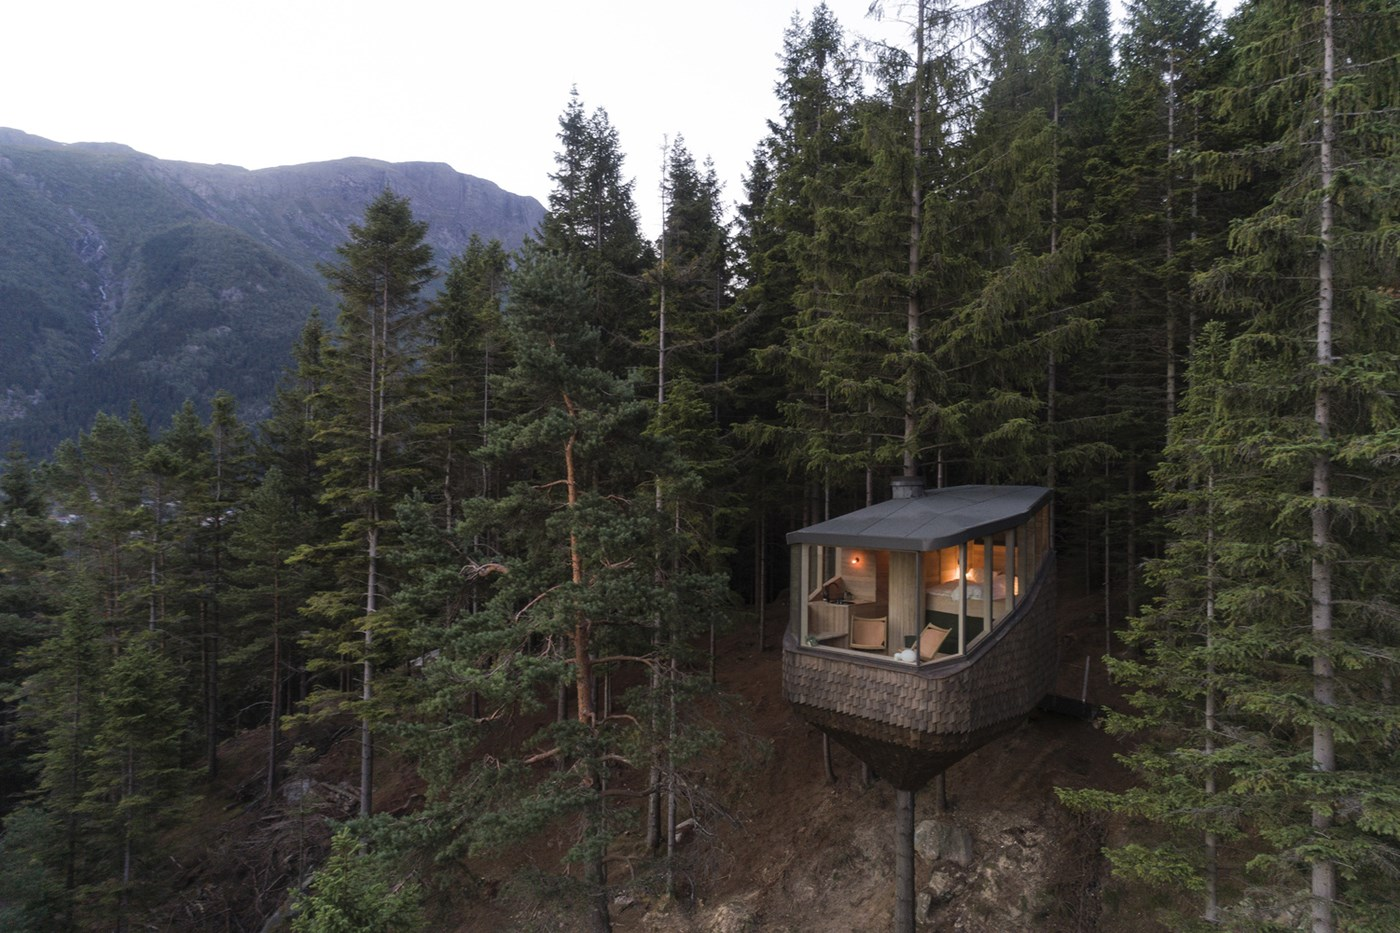 Wooden tree house